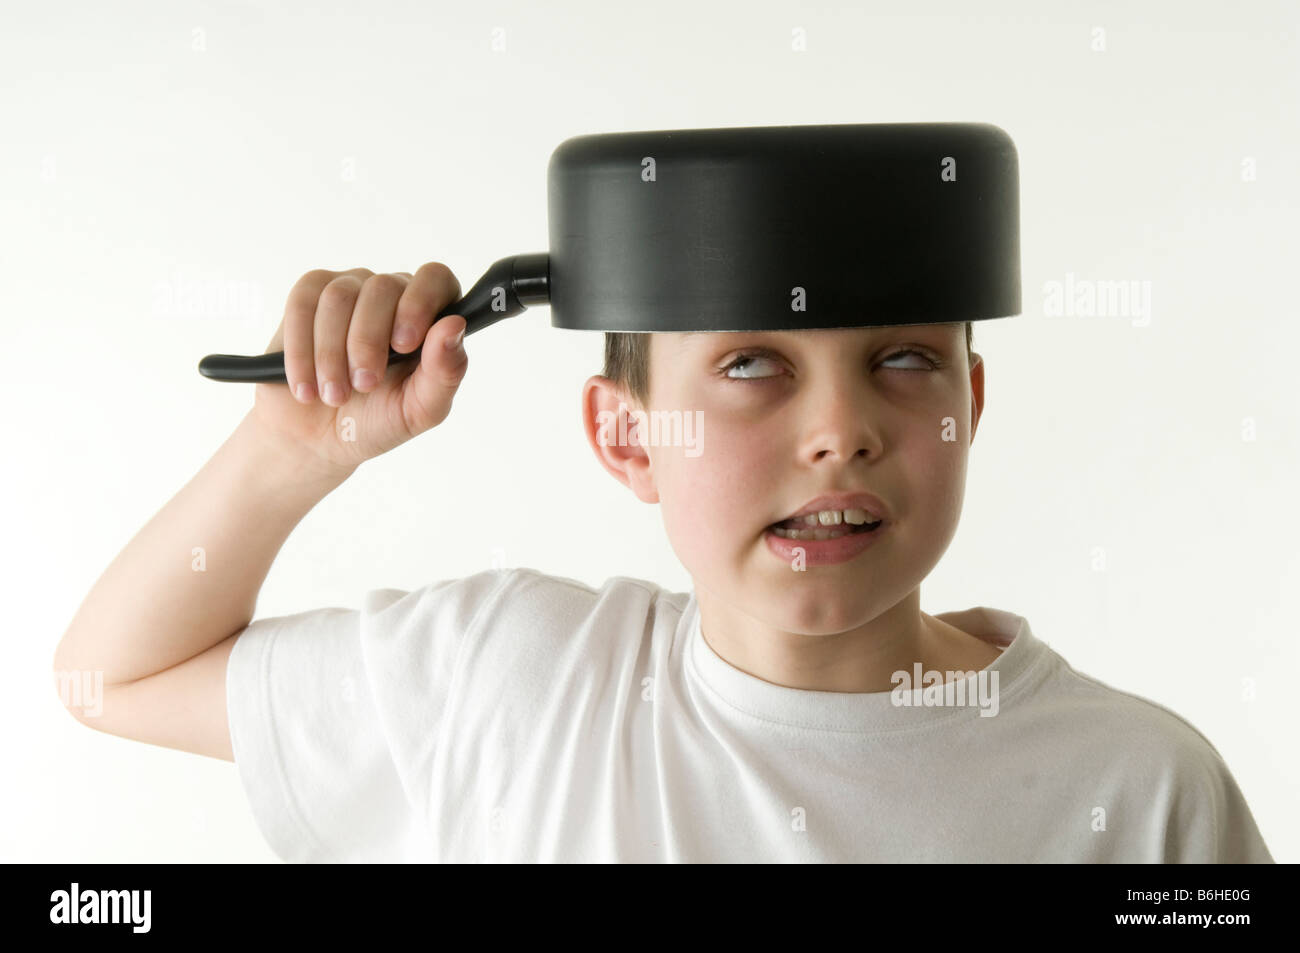 funny silly boy child messing about fun happy saucepan on head sauce pan with face stupid acting comedian comedy - Stock Image